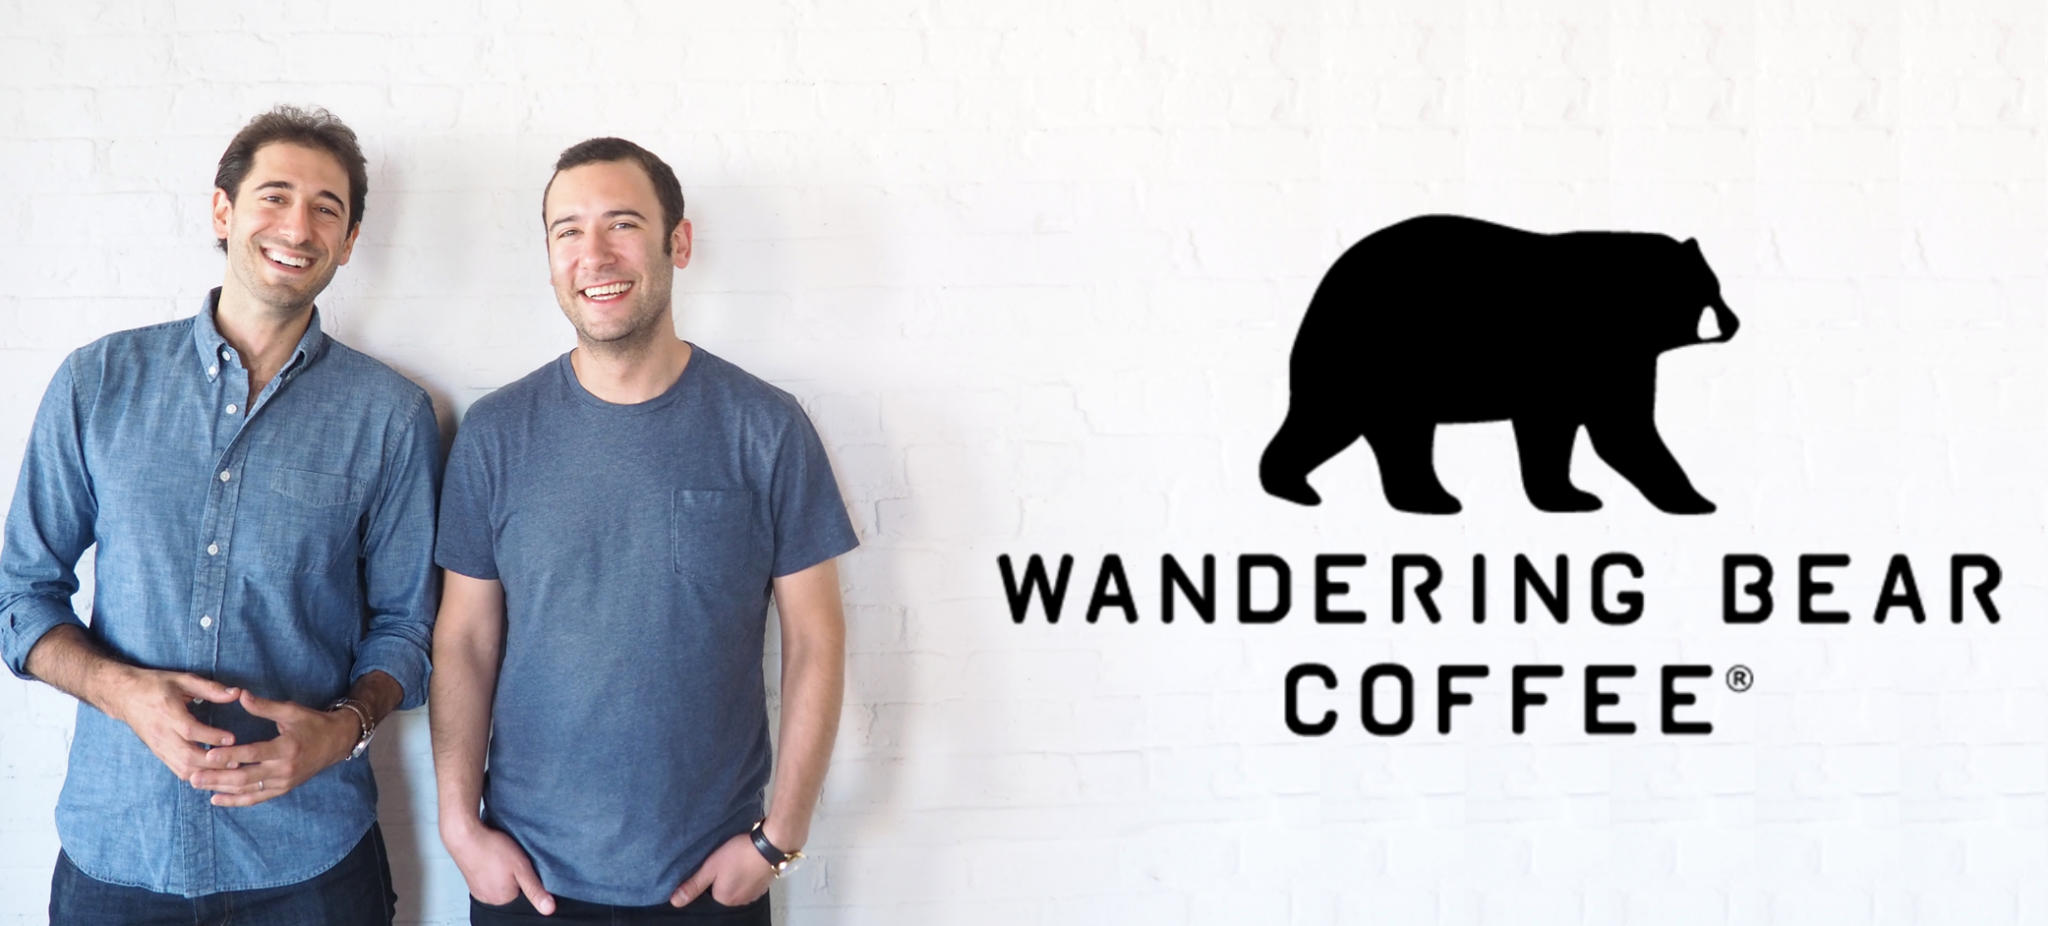 Turning a Hobby Into a Business, The Wandering Bear Coffee Story